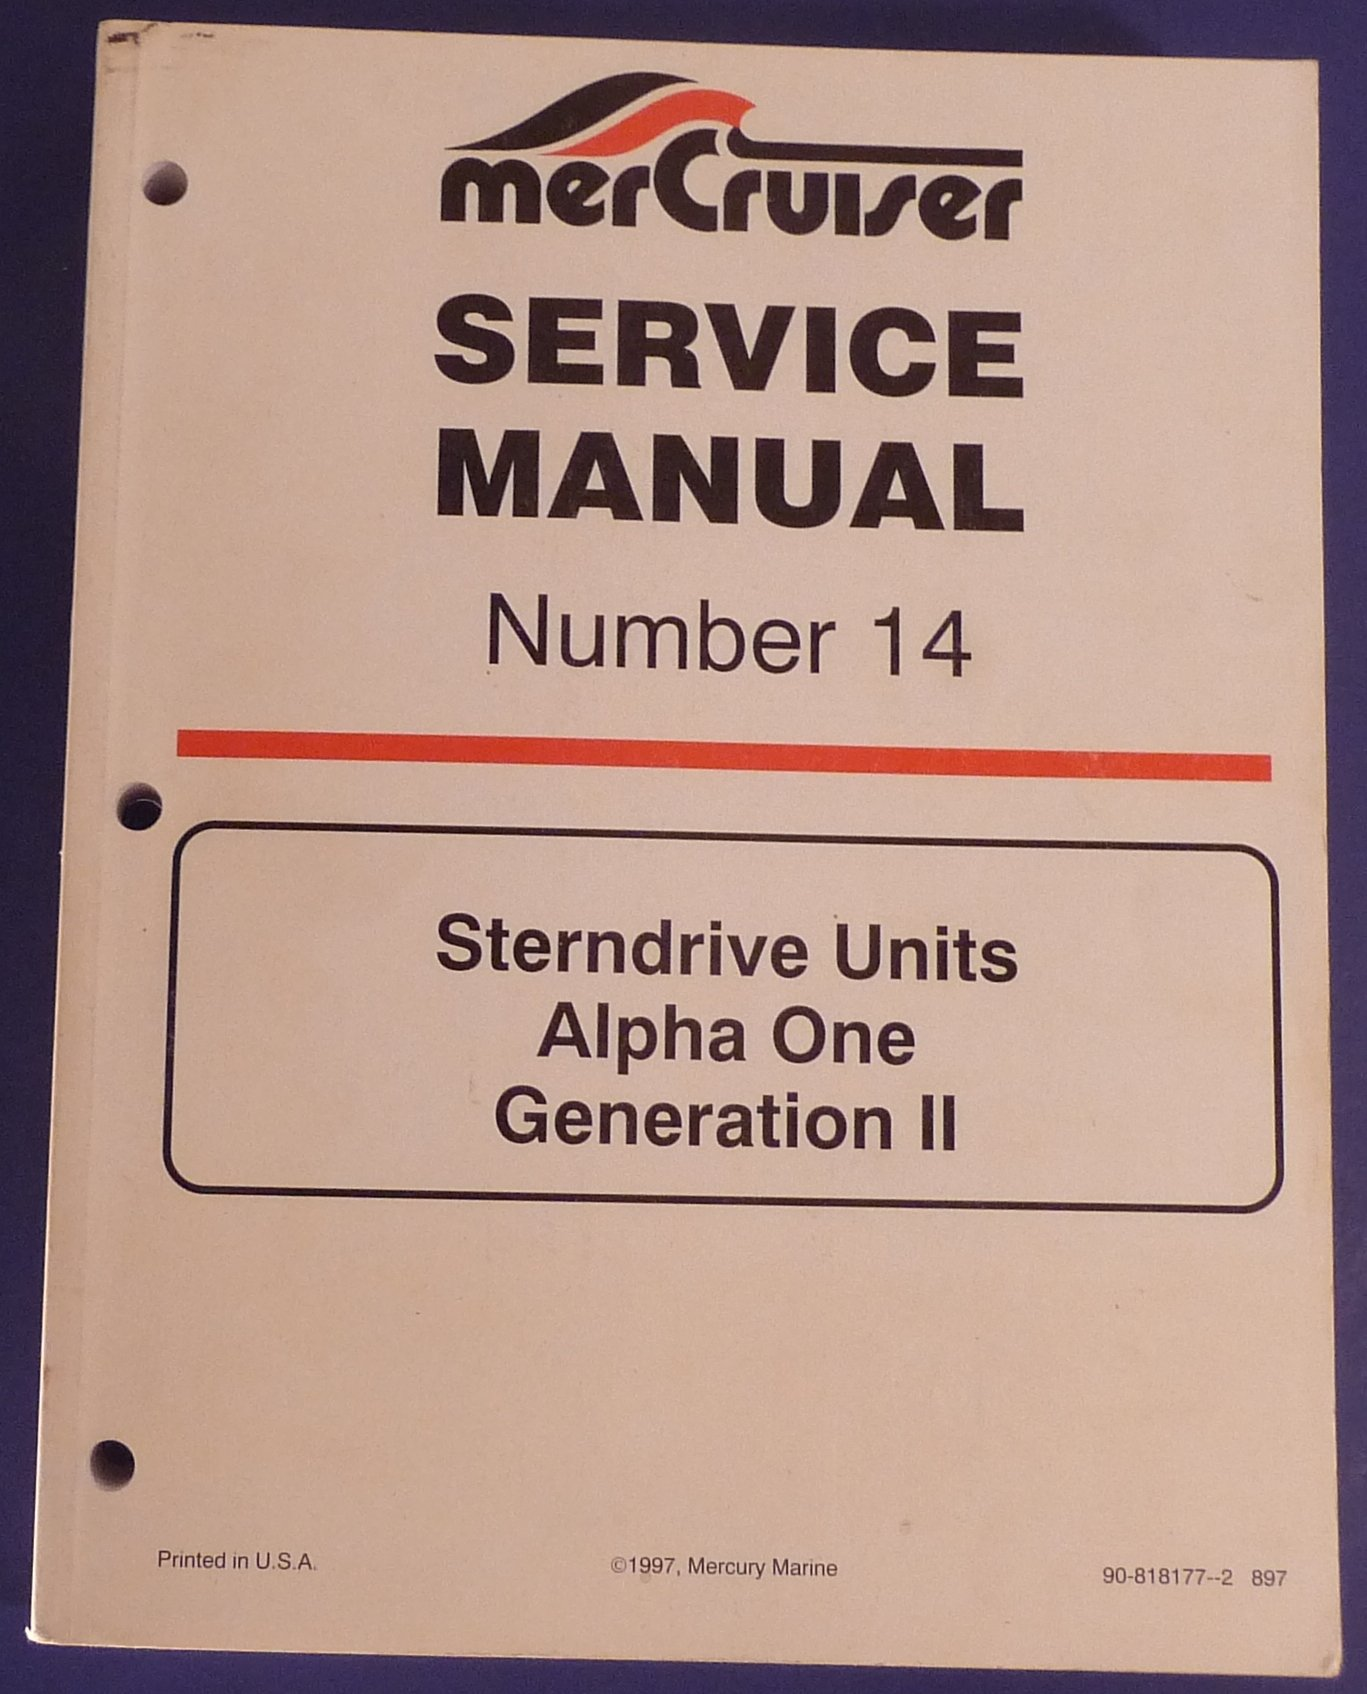 MerCruiser Service Manual Number 14 Sterndrive Units Alpha One Generation  II: Service Department of Mercury Marine: Amazon.com: Books